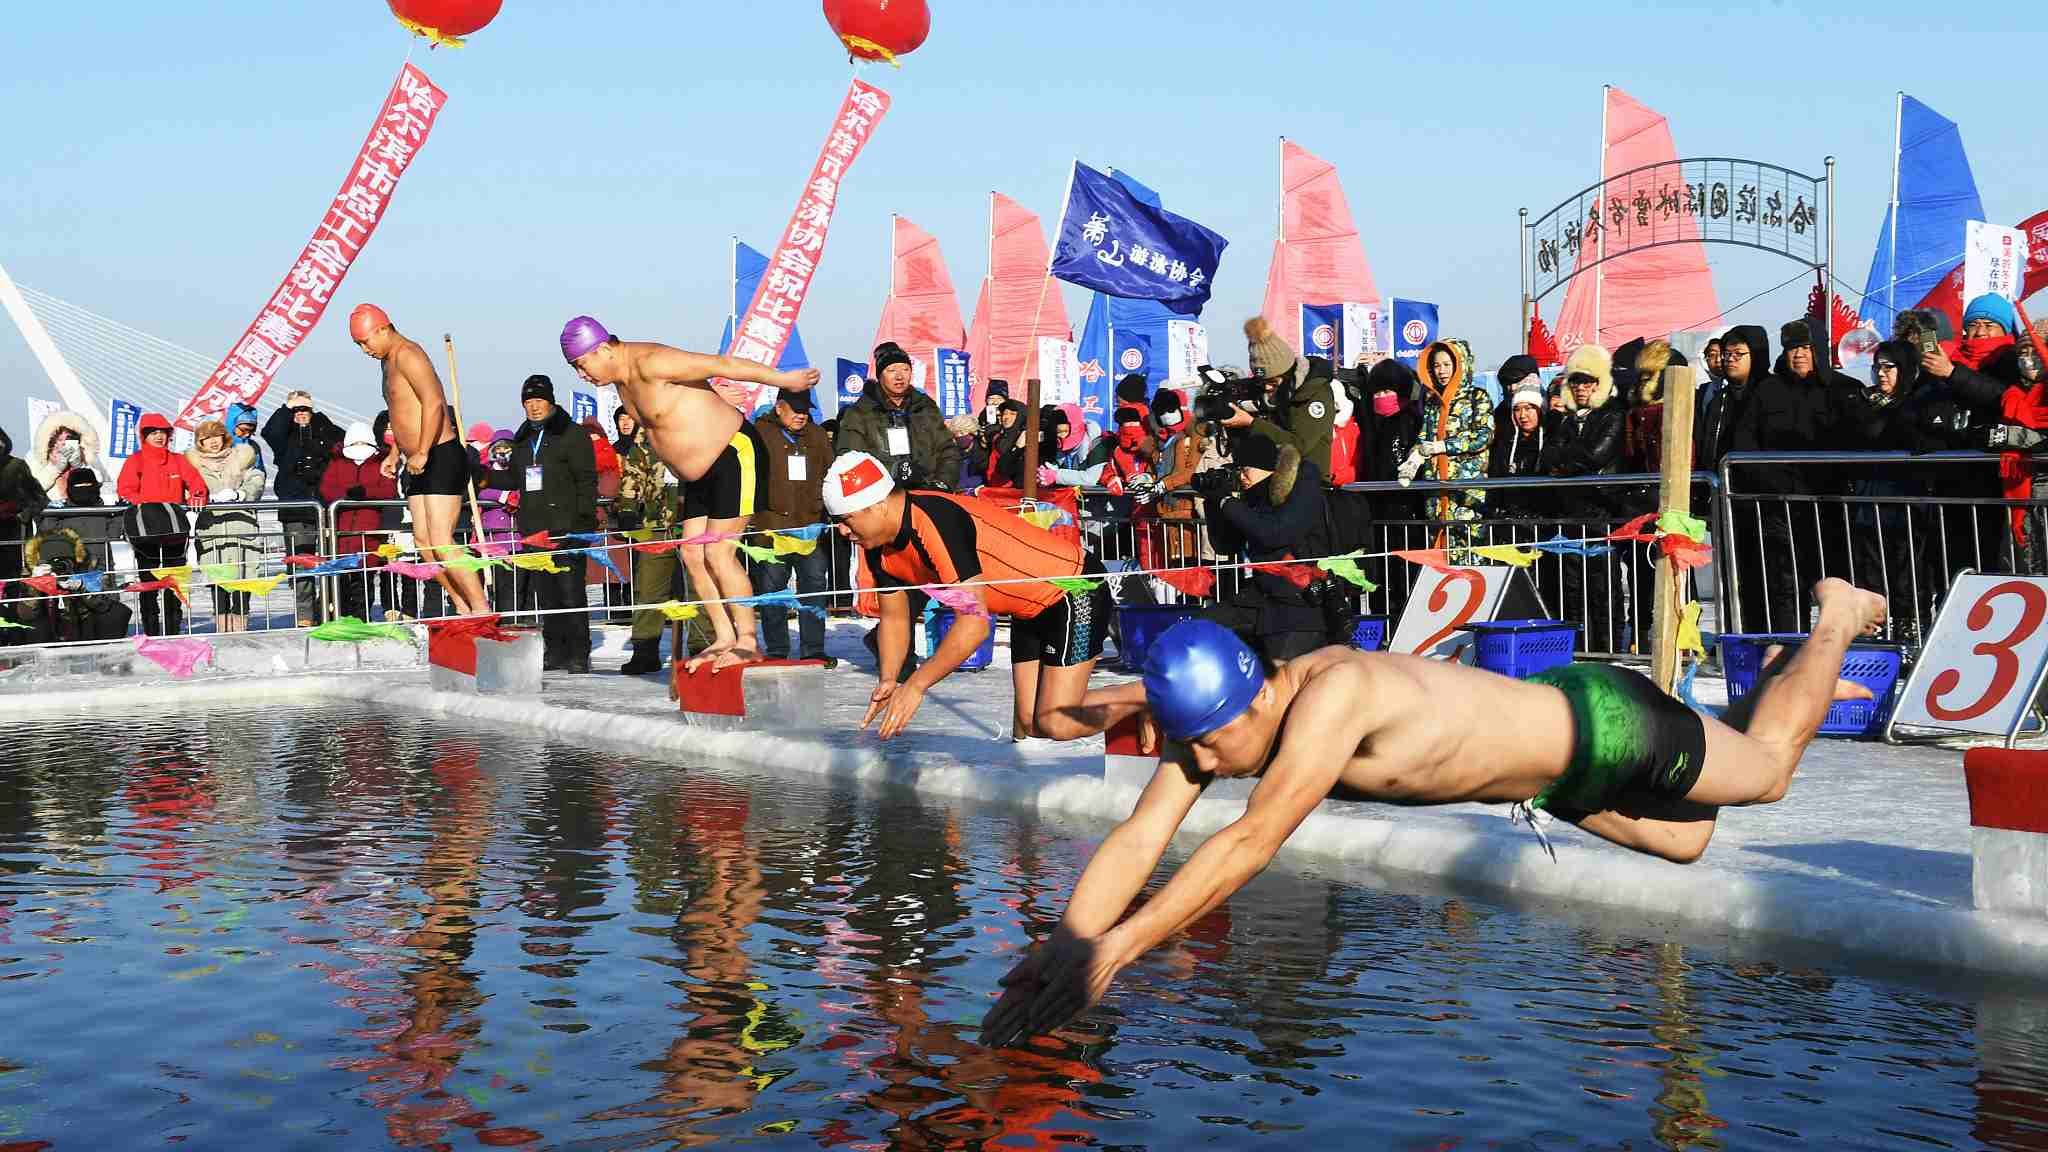 Winter swimming event held in freezing conditions in NE China